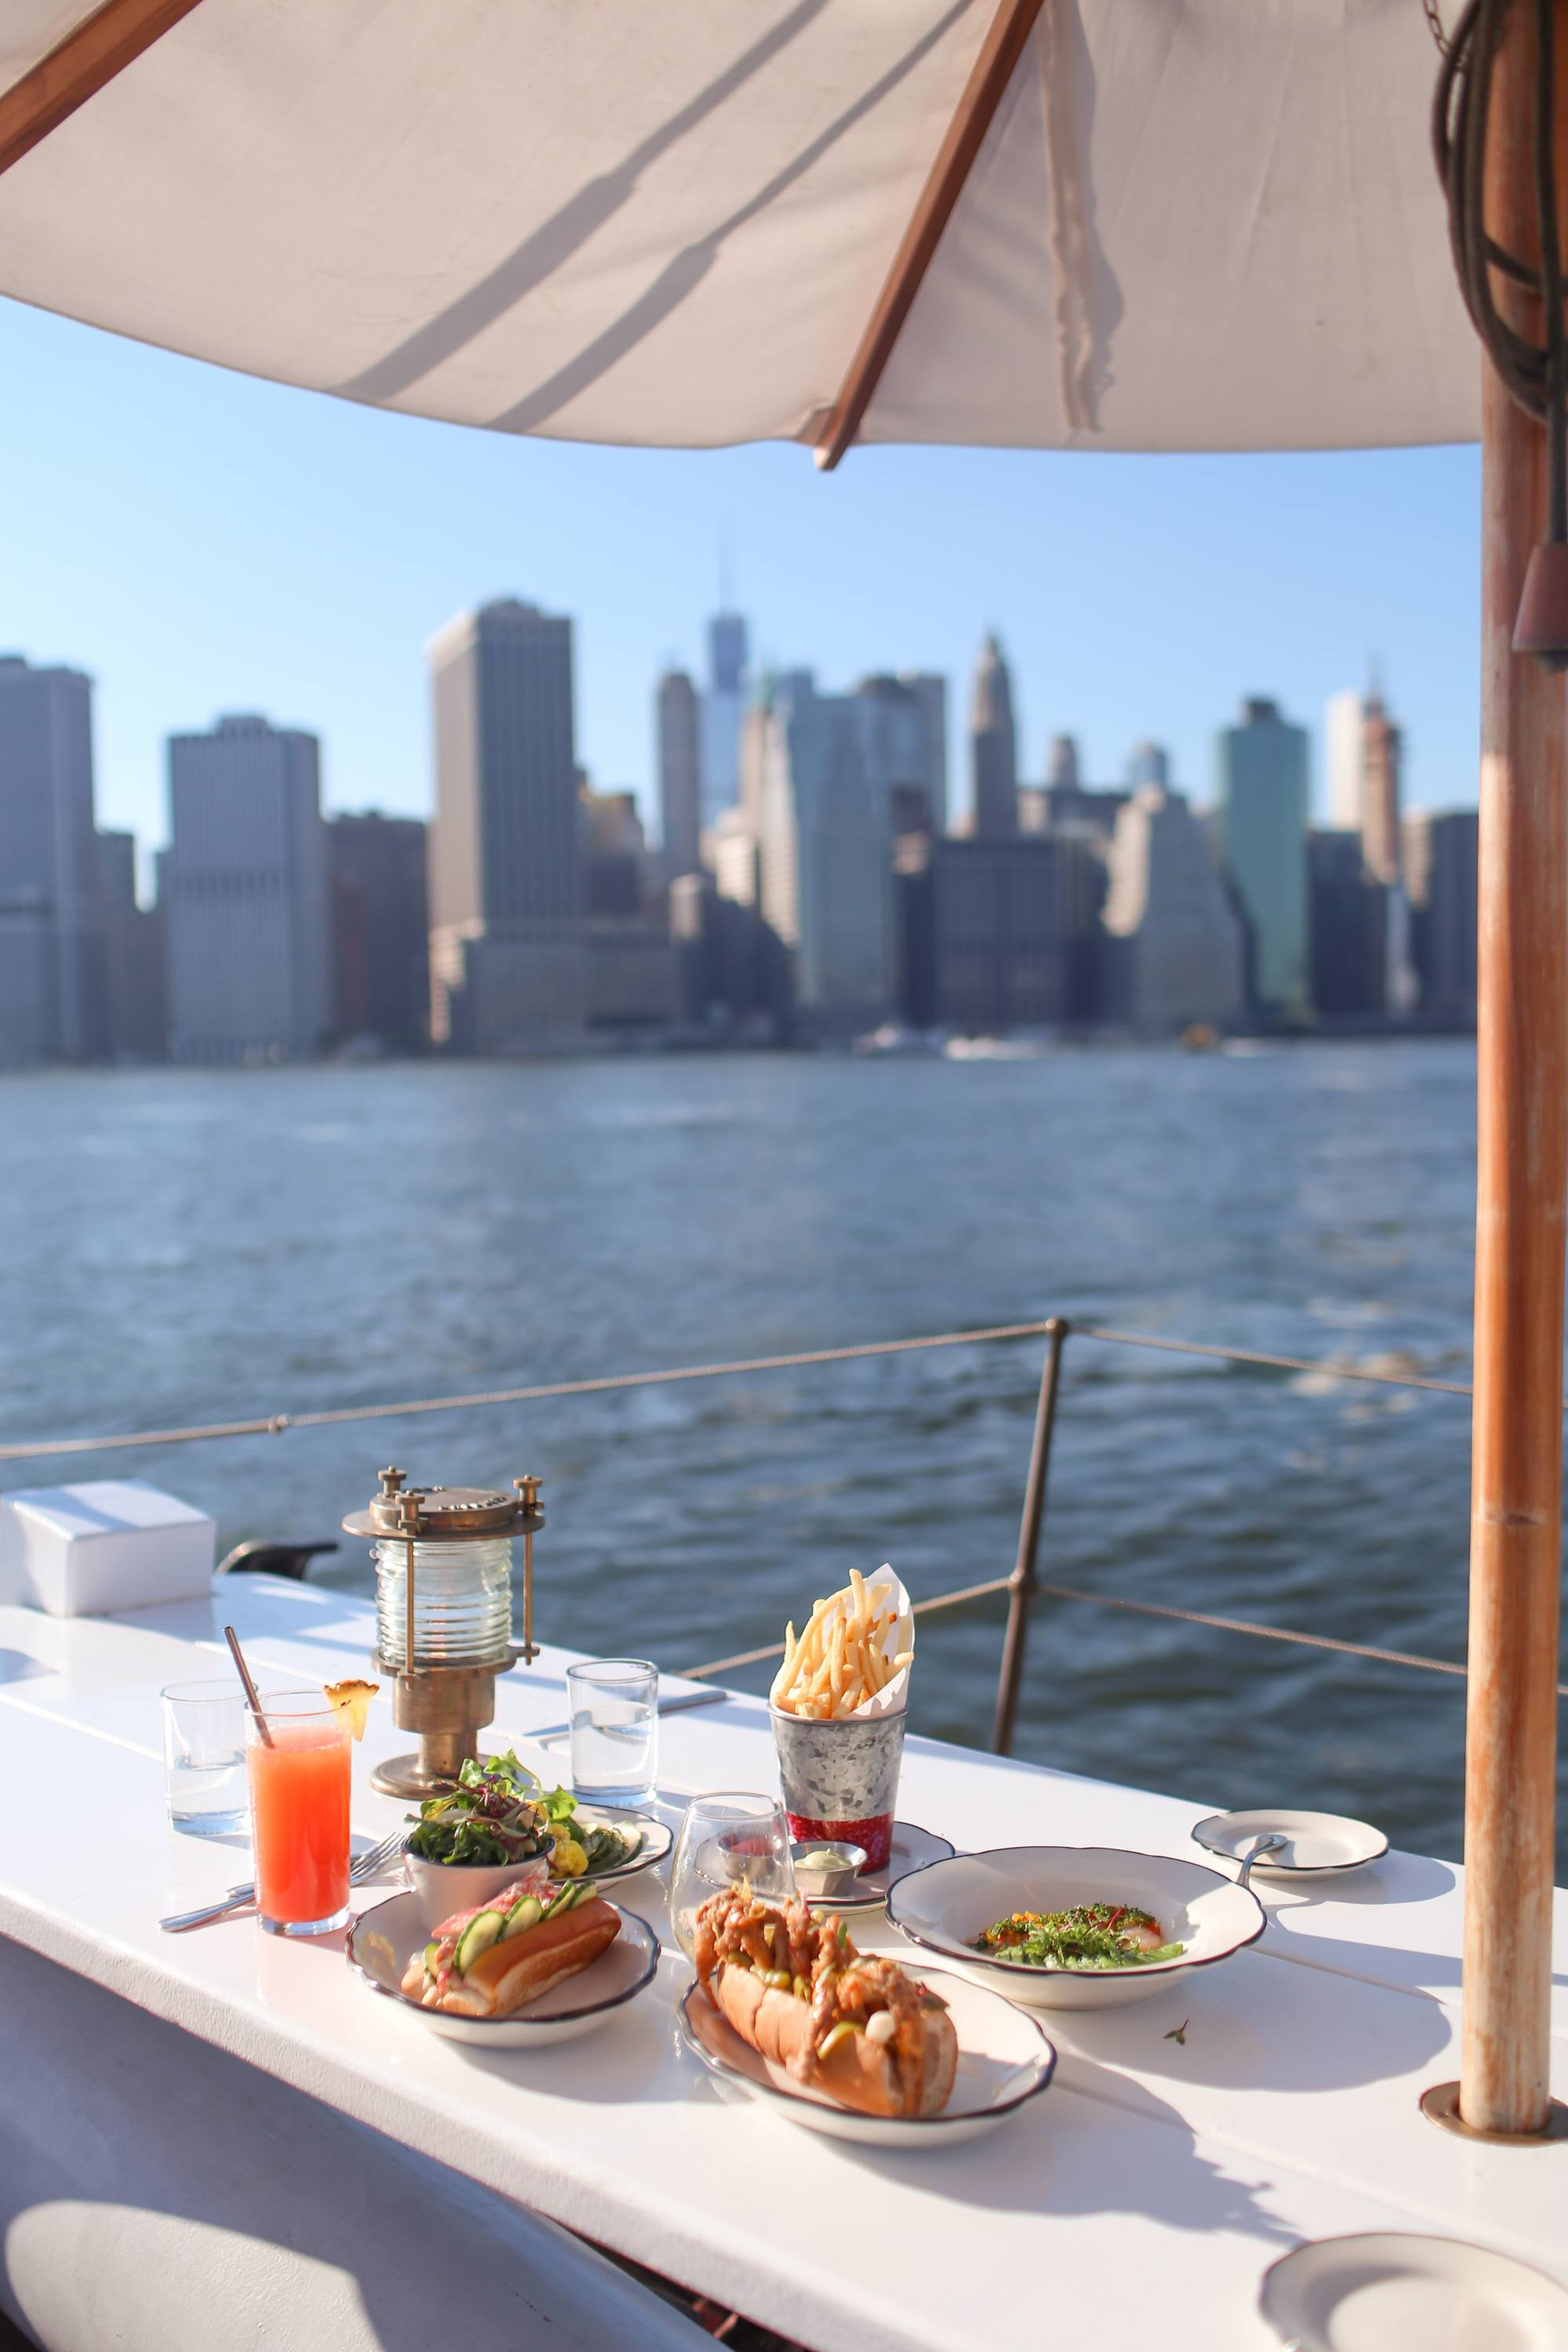 Food at Pilot, Manhattan in the background.